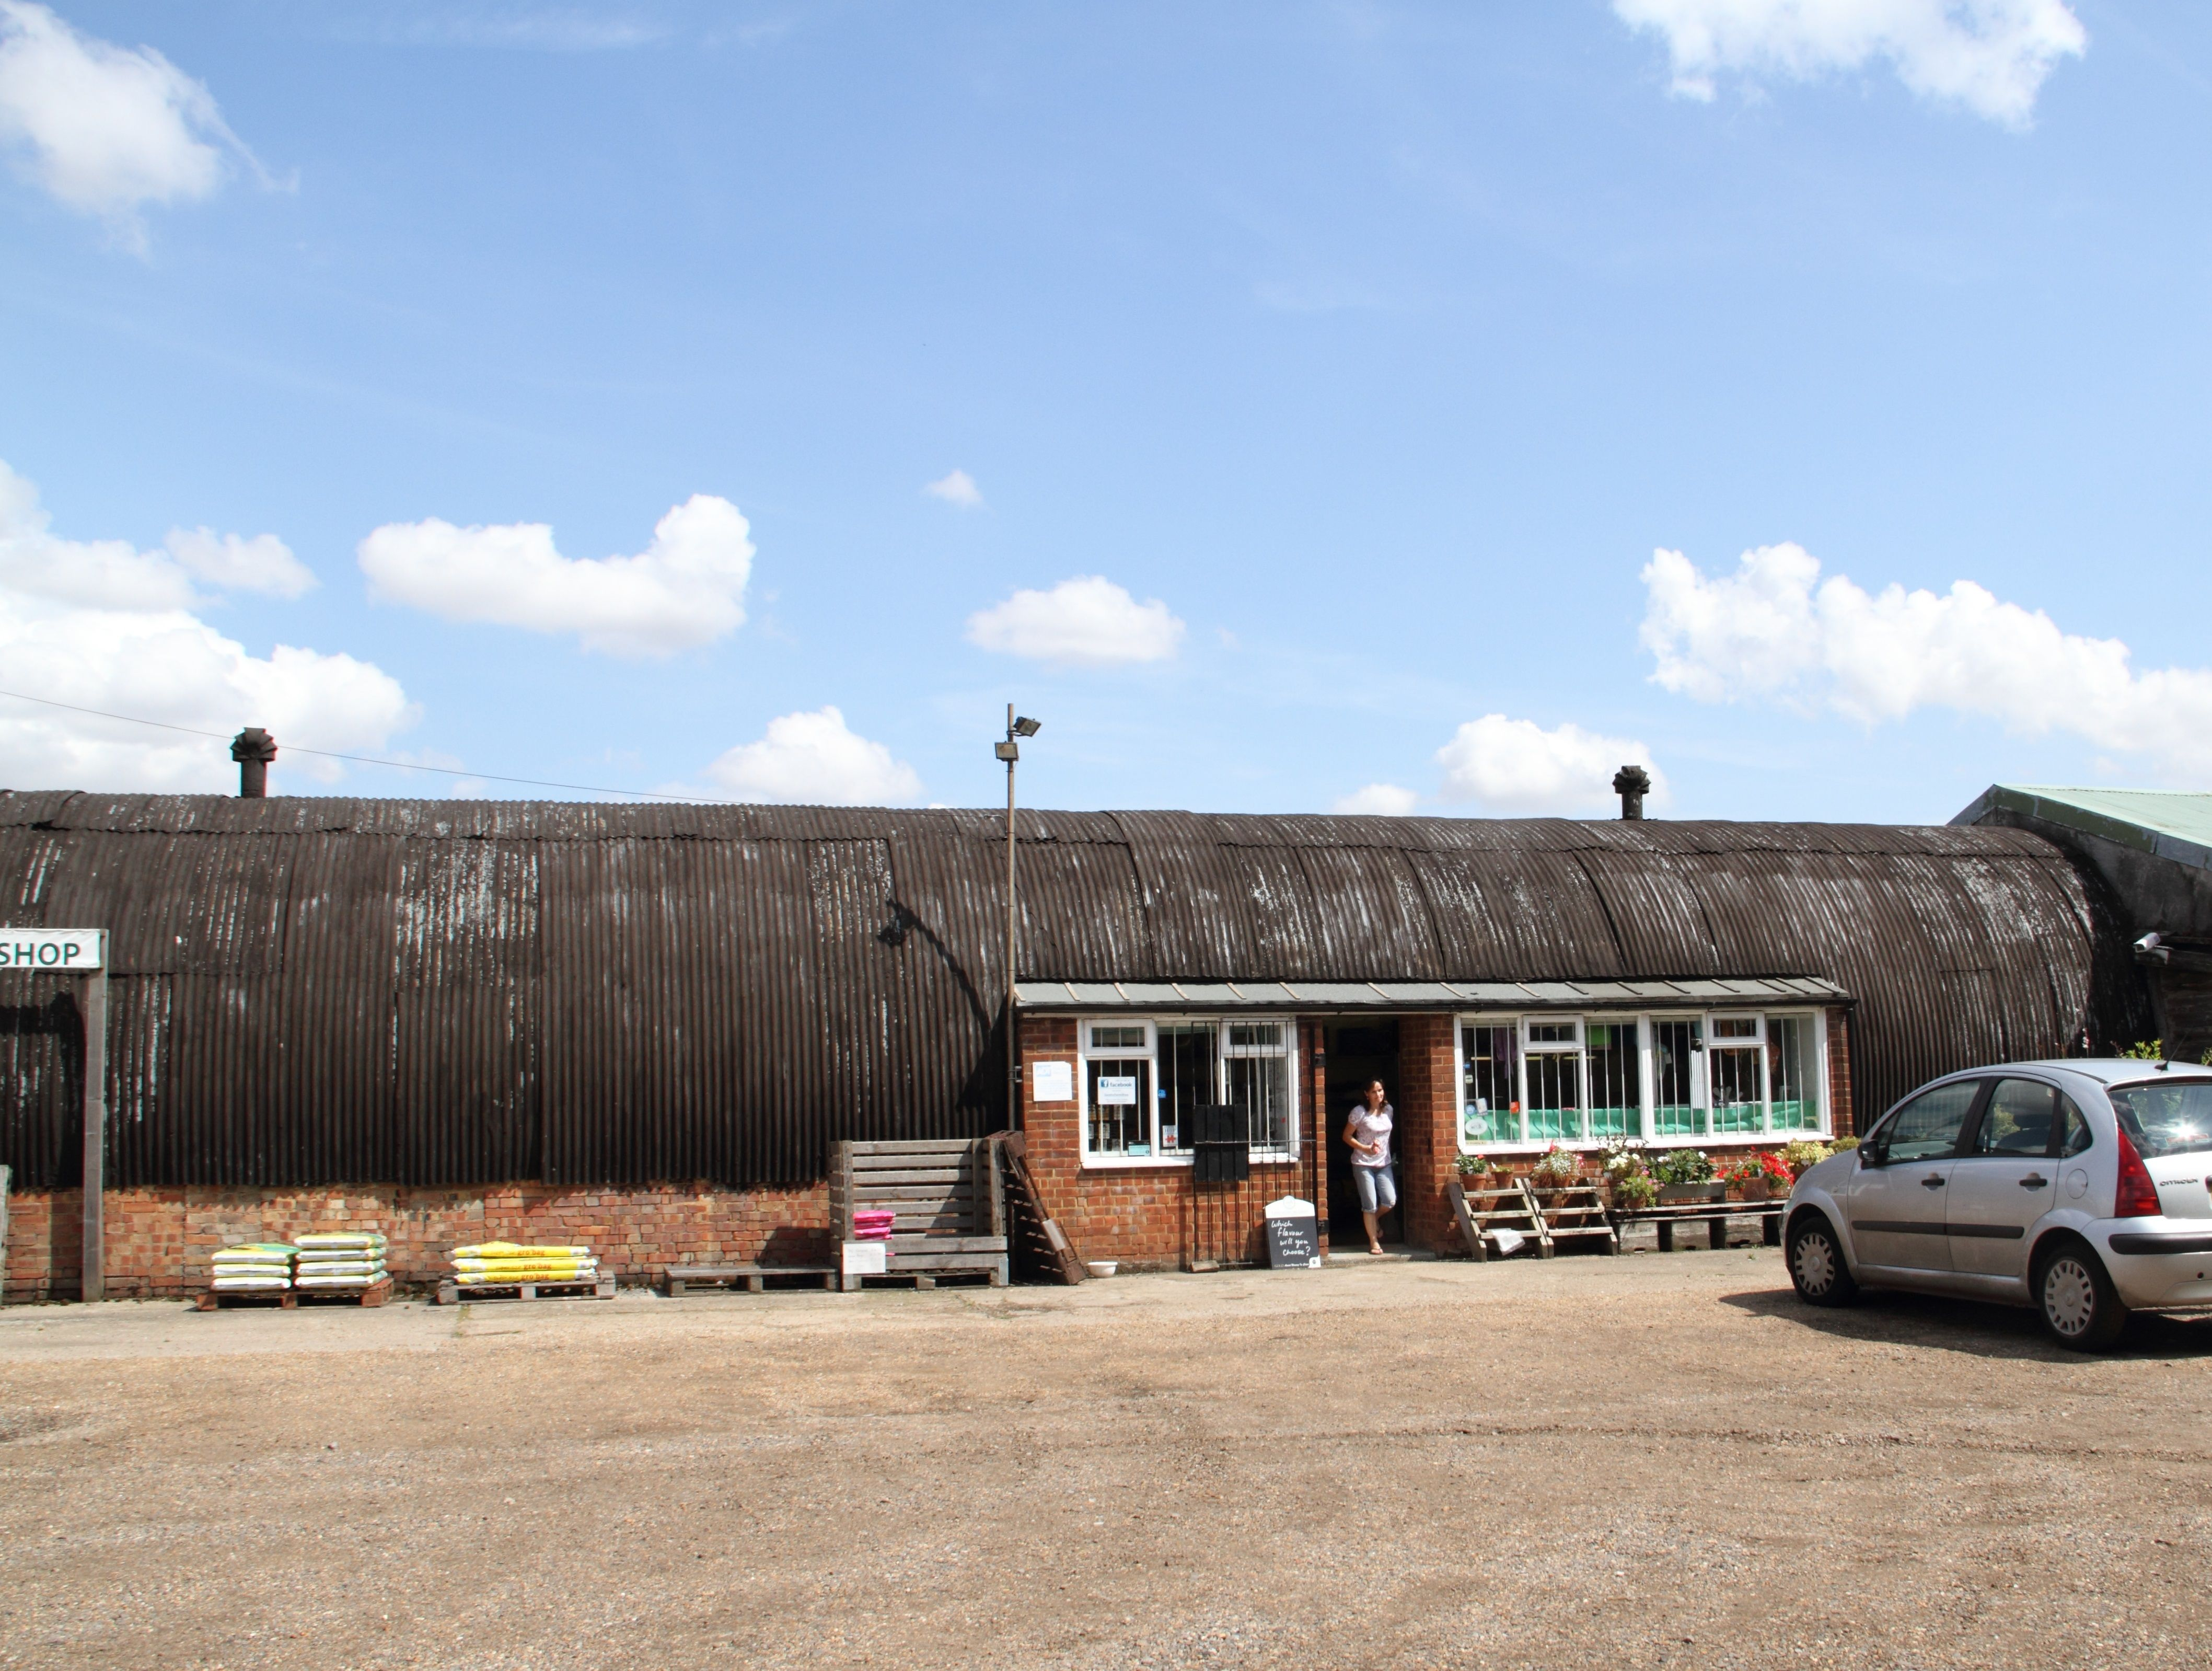 Sarah s farm shop at Steeple Morden Possible old airfield Nissan